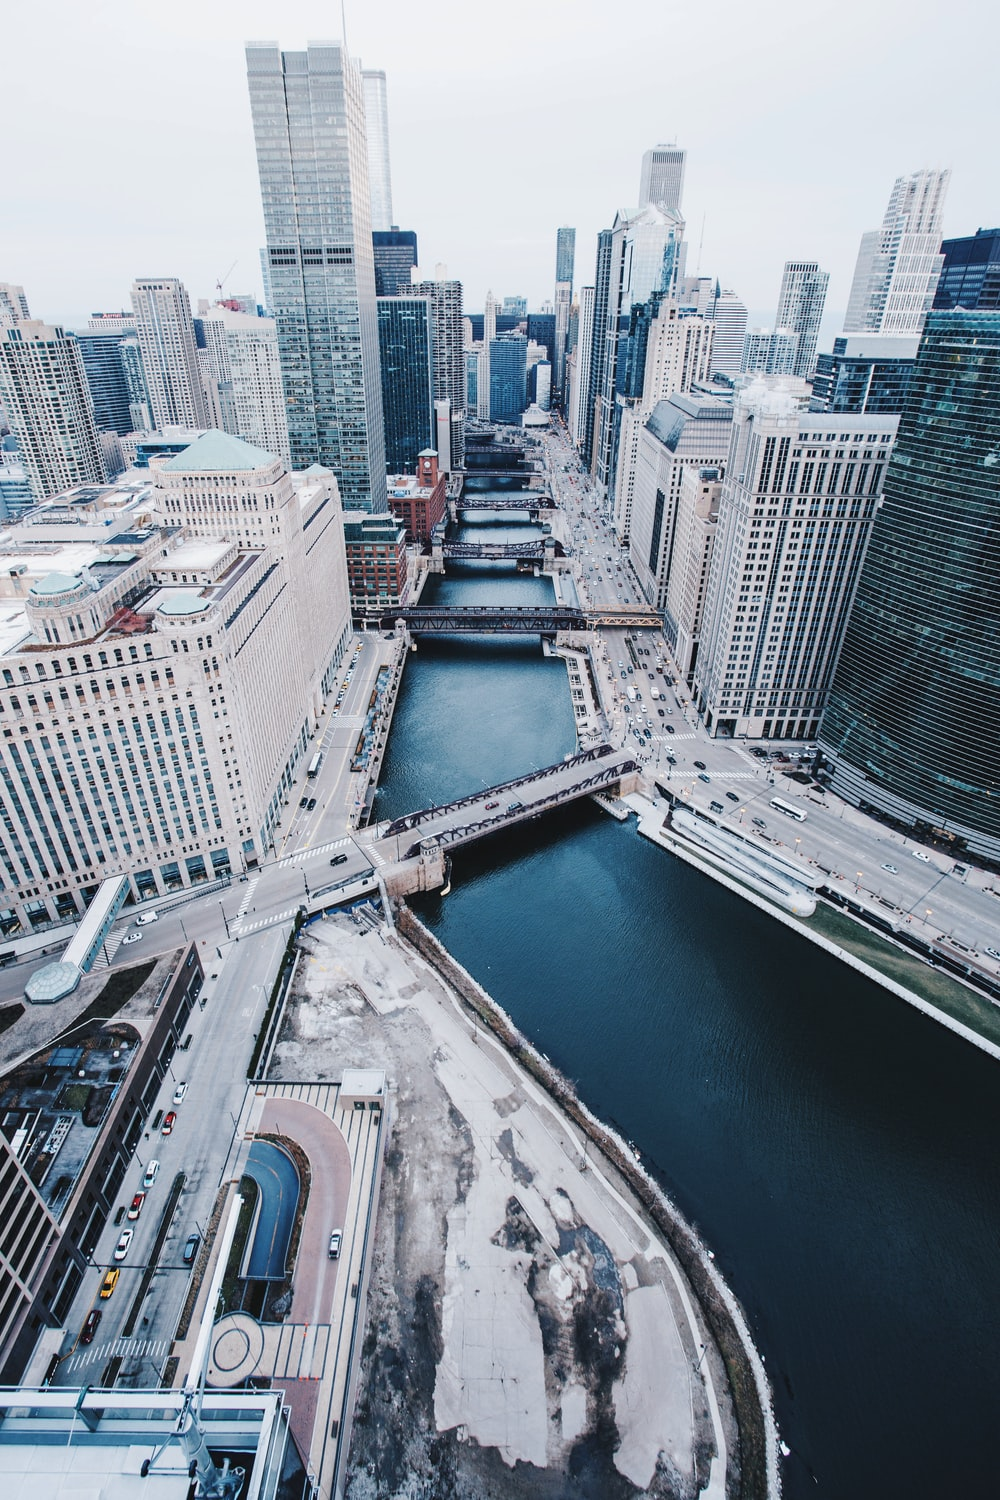 aerial view photography of city buildings with body of water